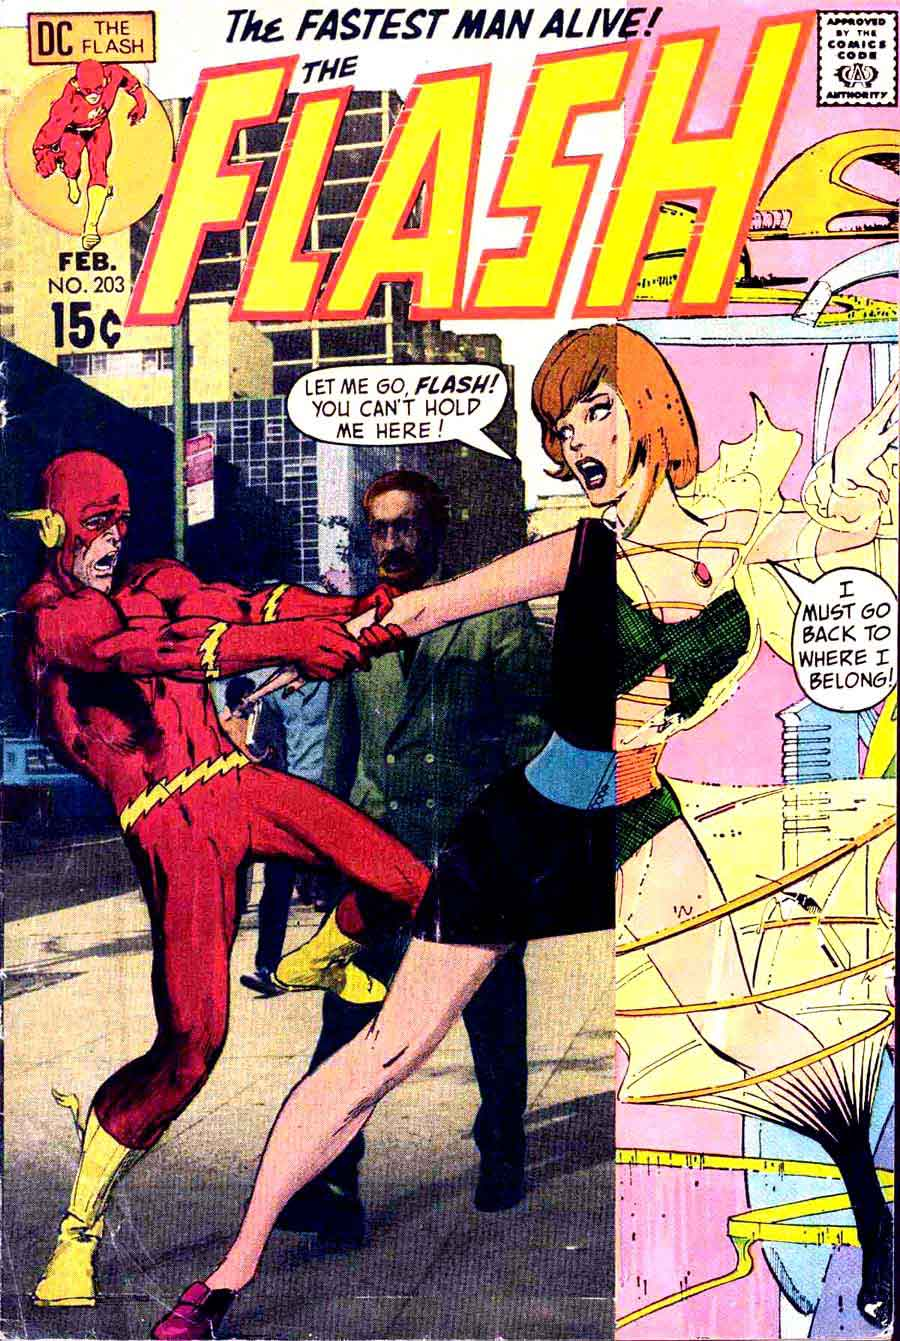 Flash #203 silver age dc cover by Neal Adams